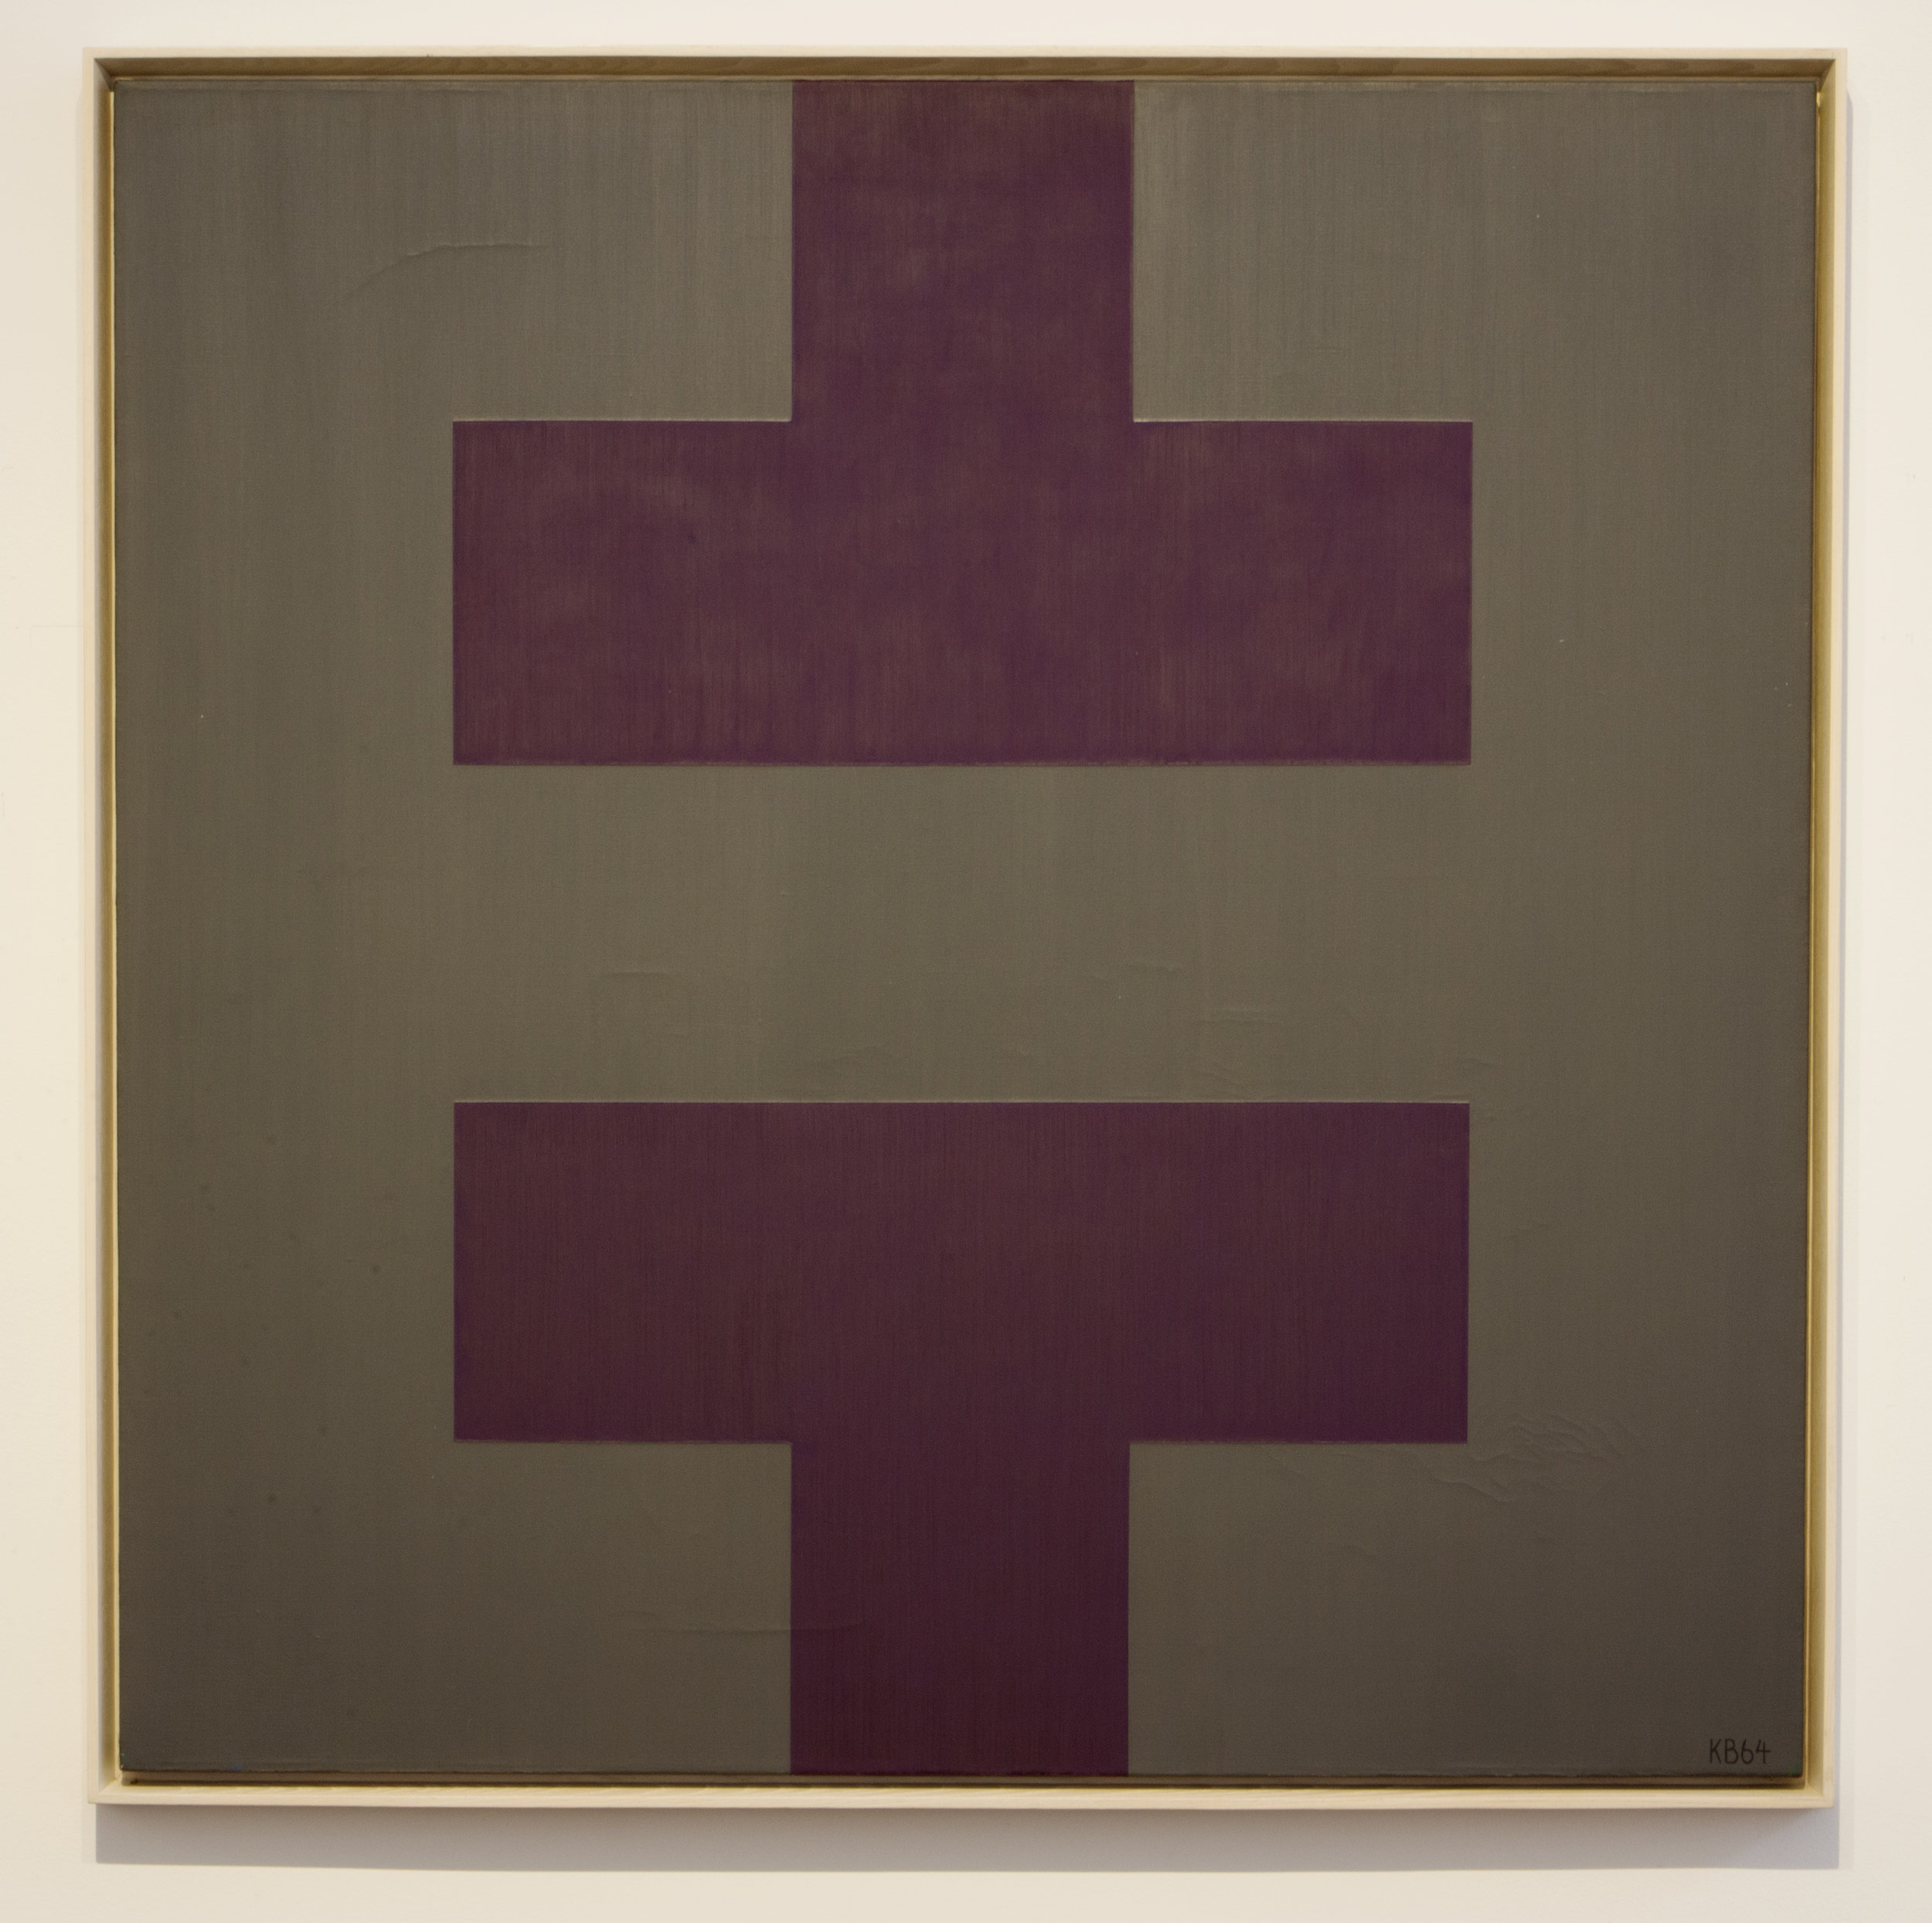 #36/2 , 1965  oil on canvas 42 x 42 inches; 106.7 x 106.7 centimeters